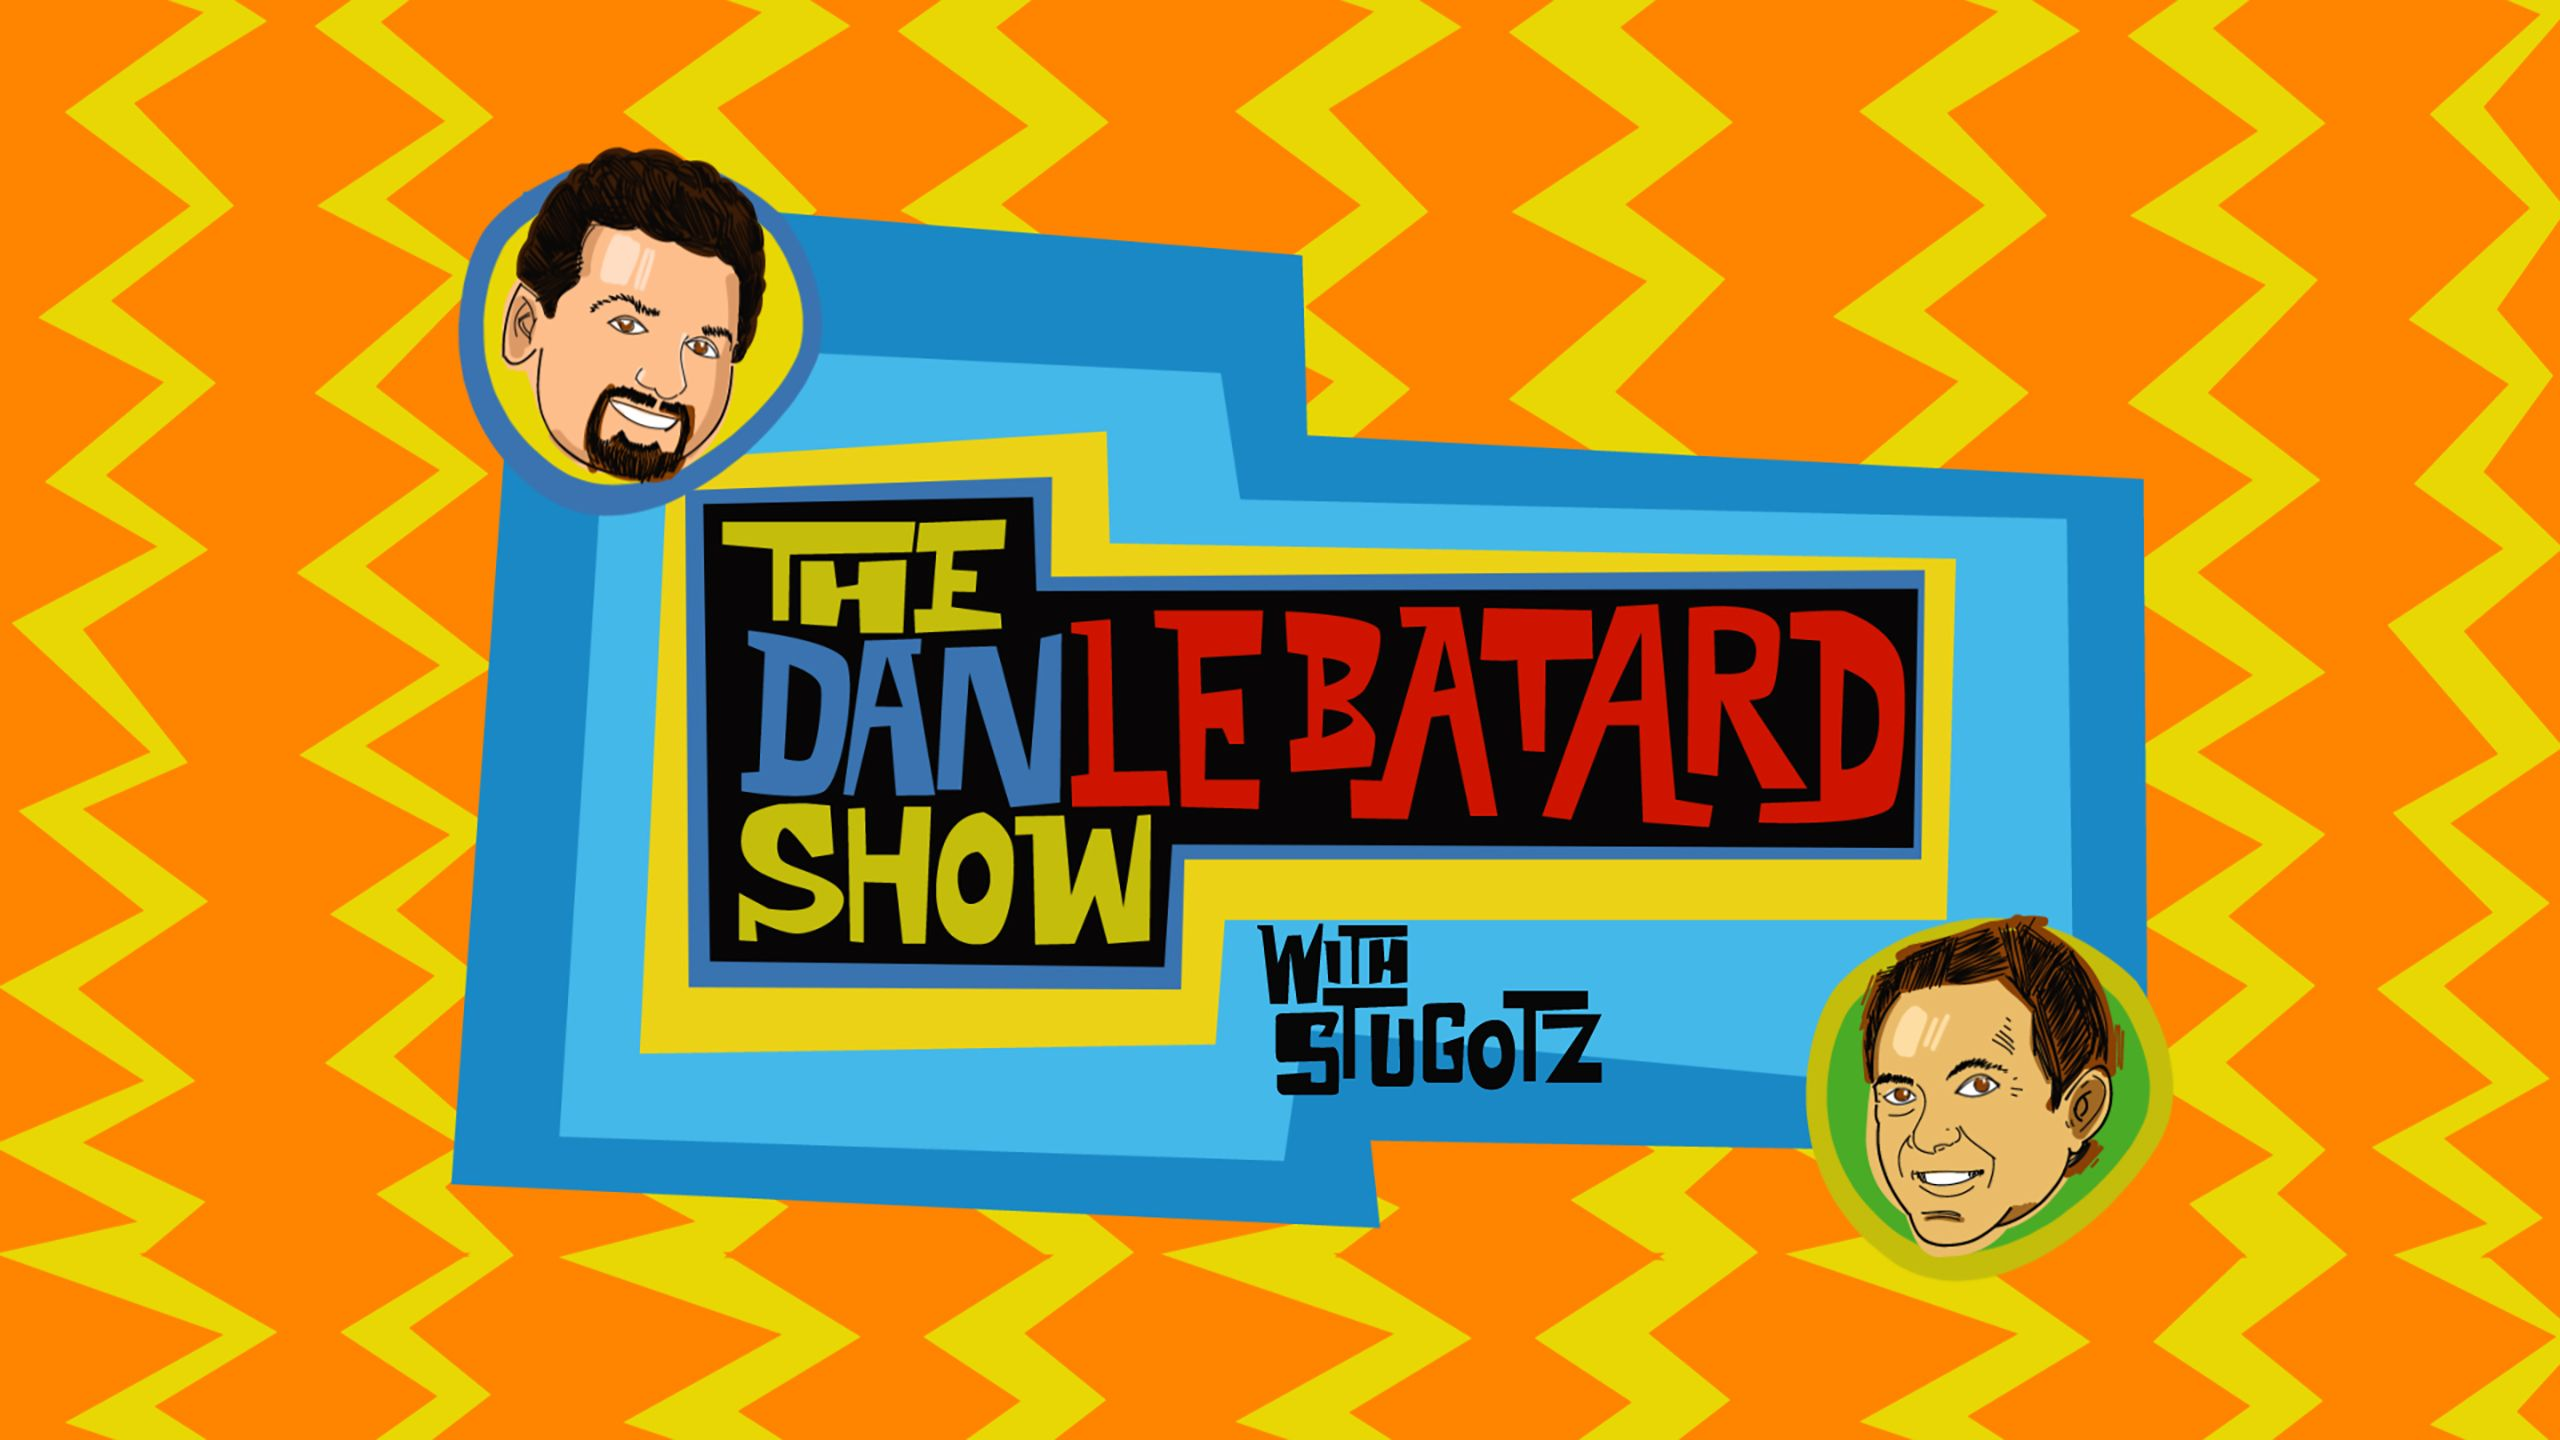 Tue, 6/19 - The Dan Le Batard Show with Stugotz Presented by Progressive